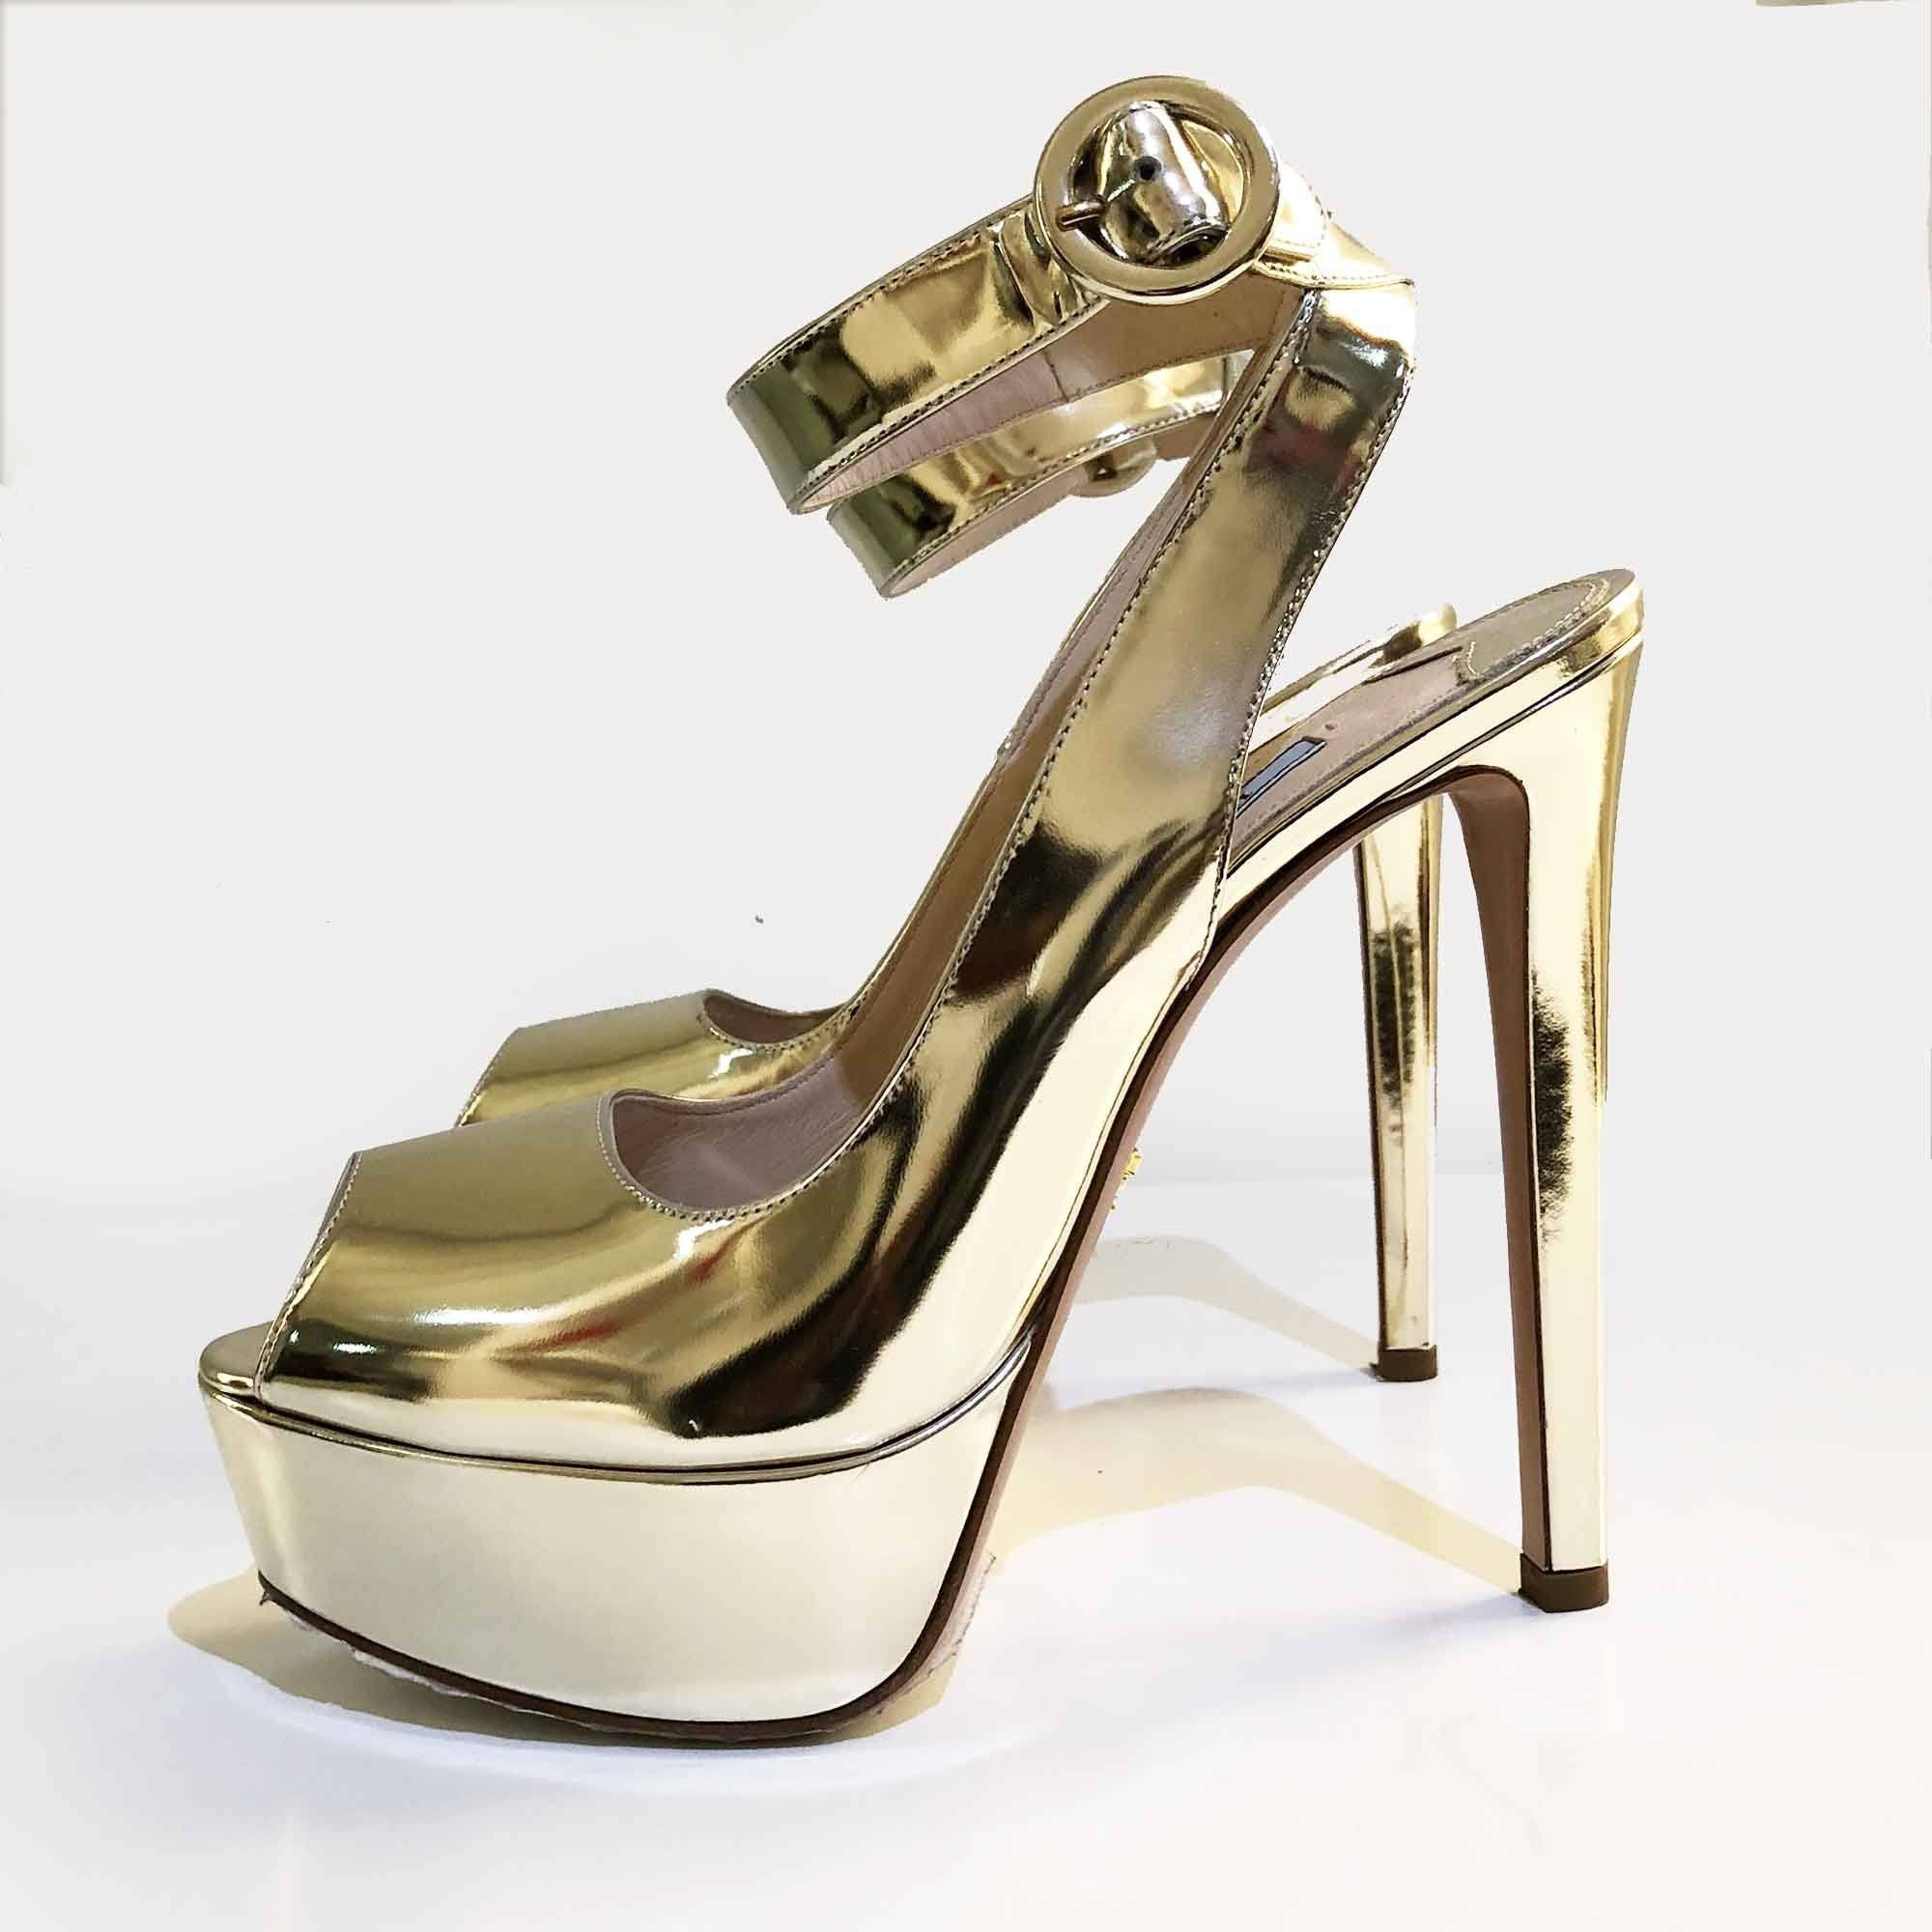 Prada Gold Metallic Leather Platform Peep Toe Platform Ankle Strap Sandals Size 38